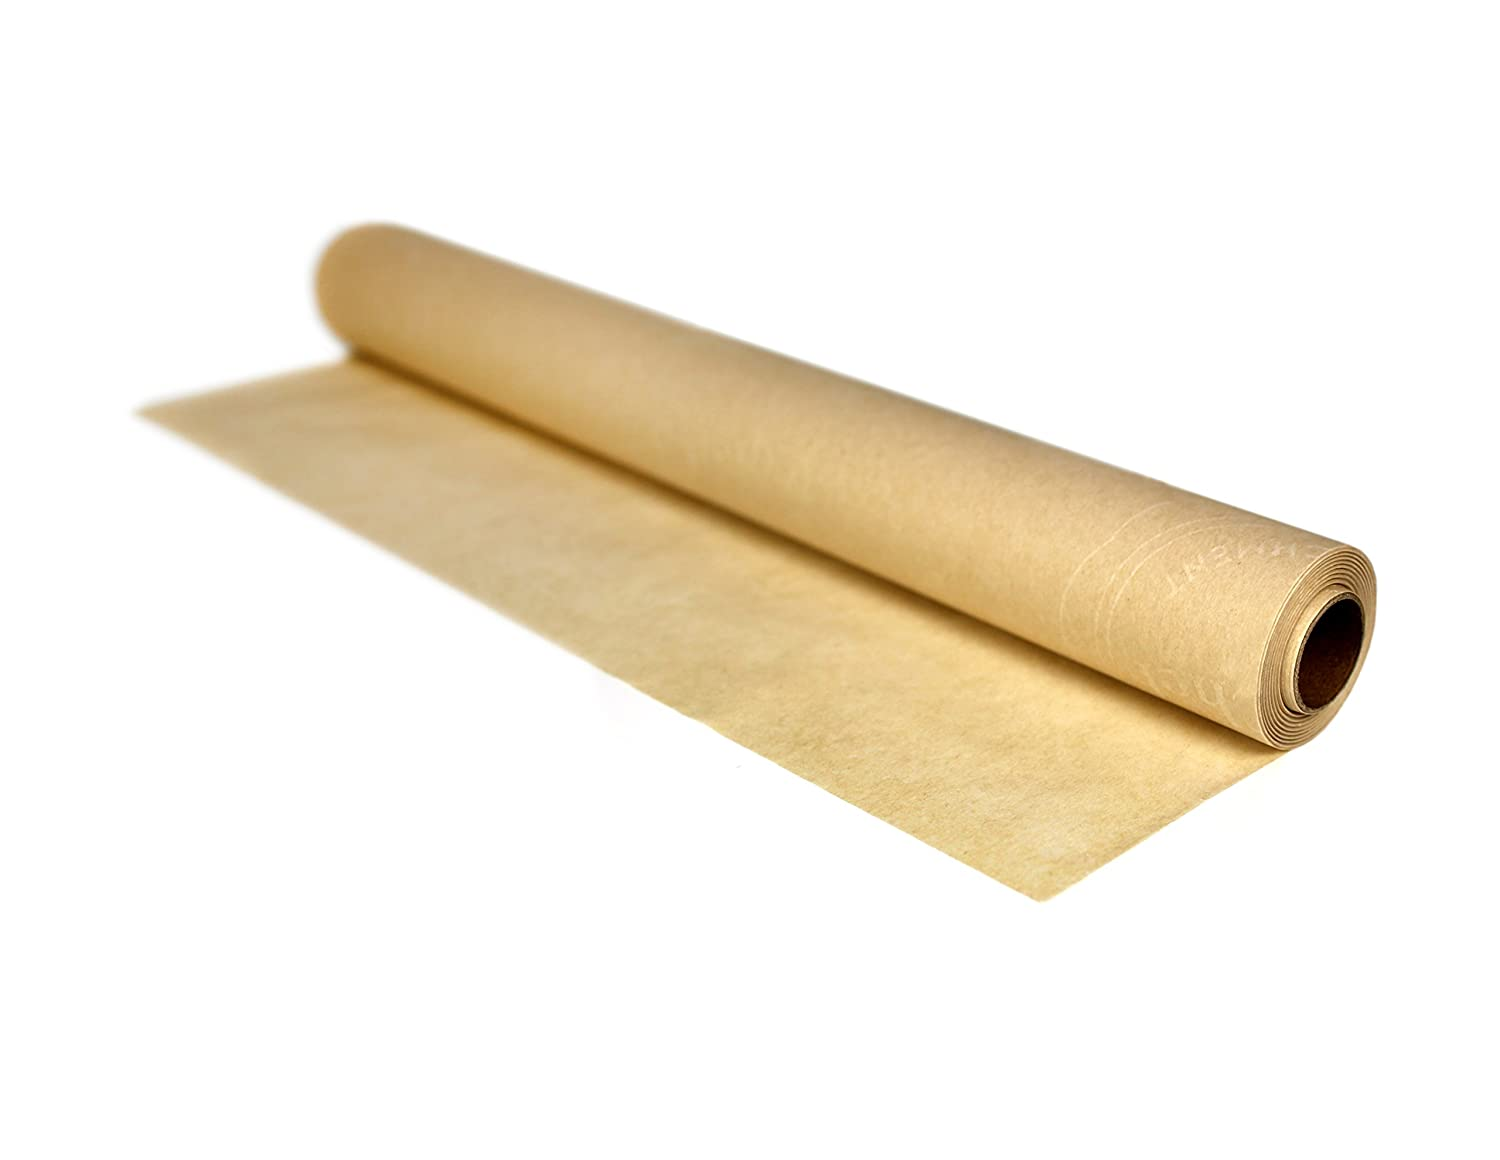 ChicWrap Culinary Parchment Paper Refill Roll - 82 Square Feet 9912